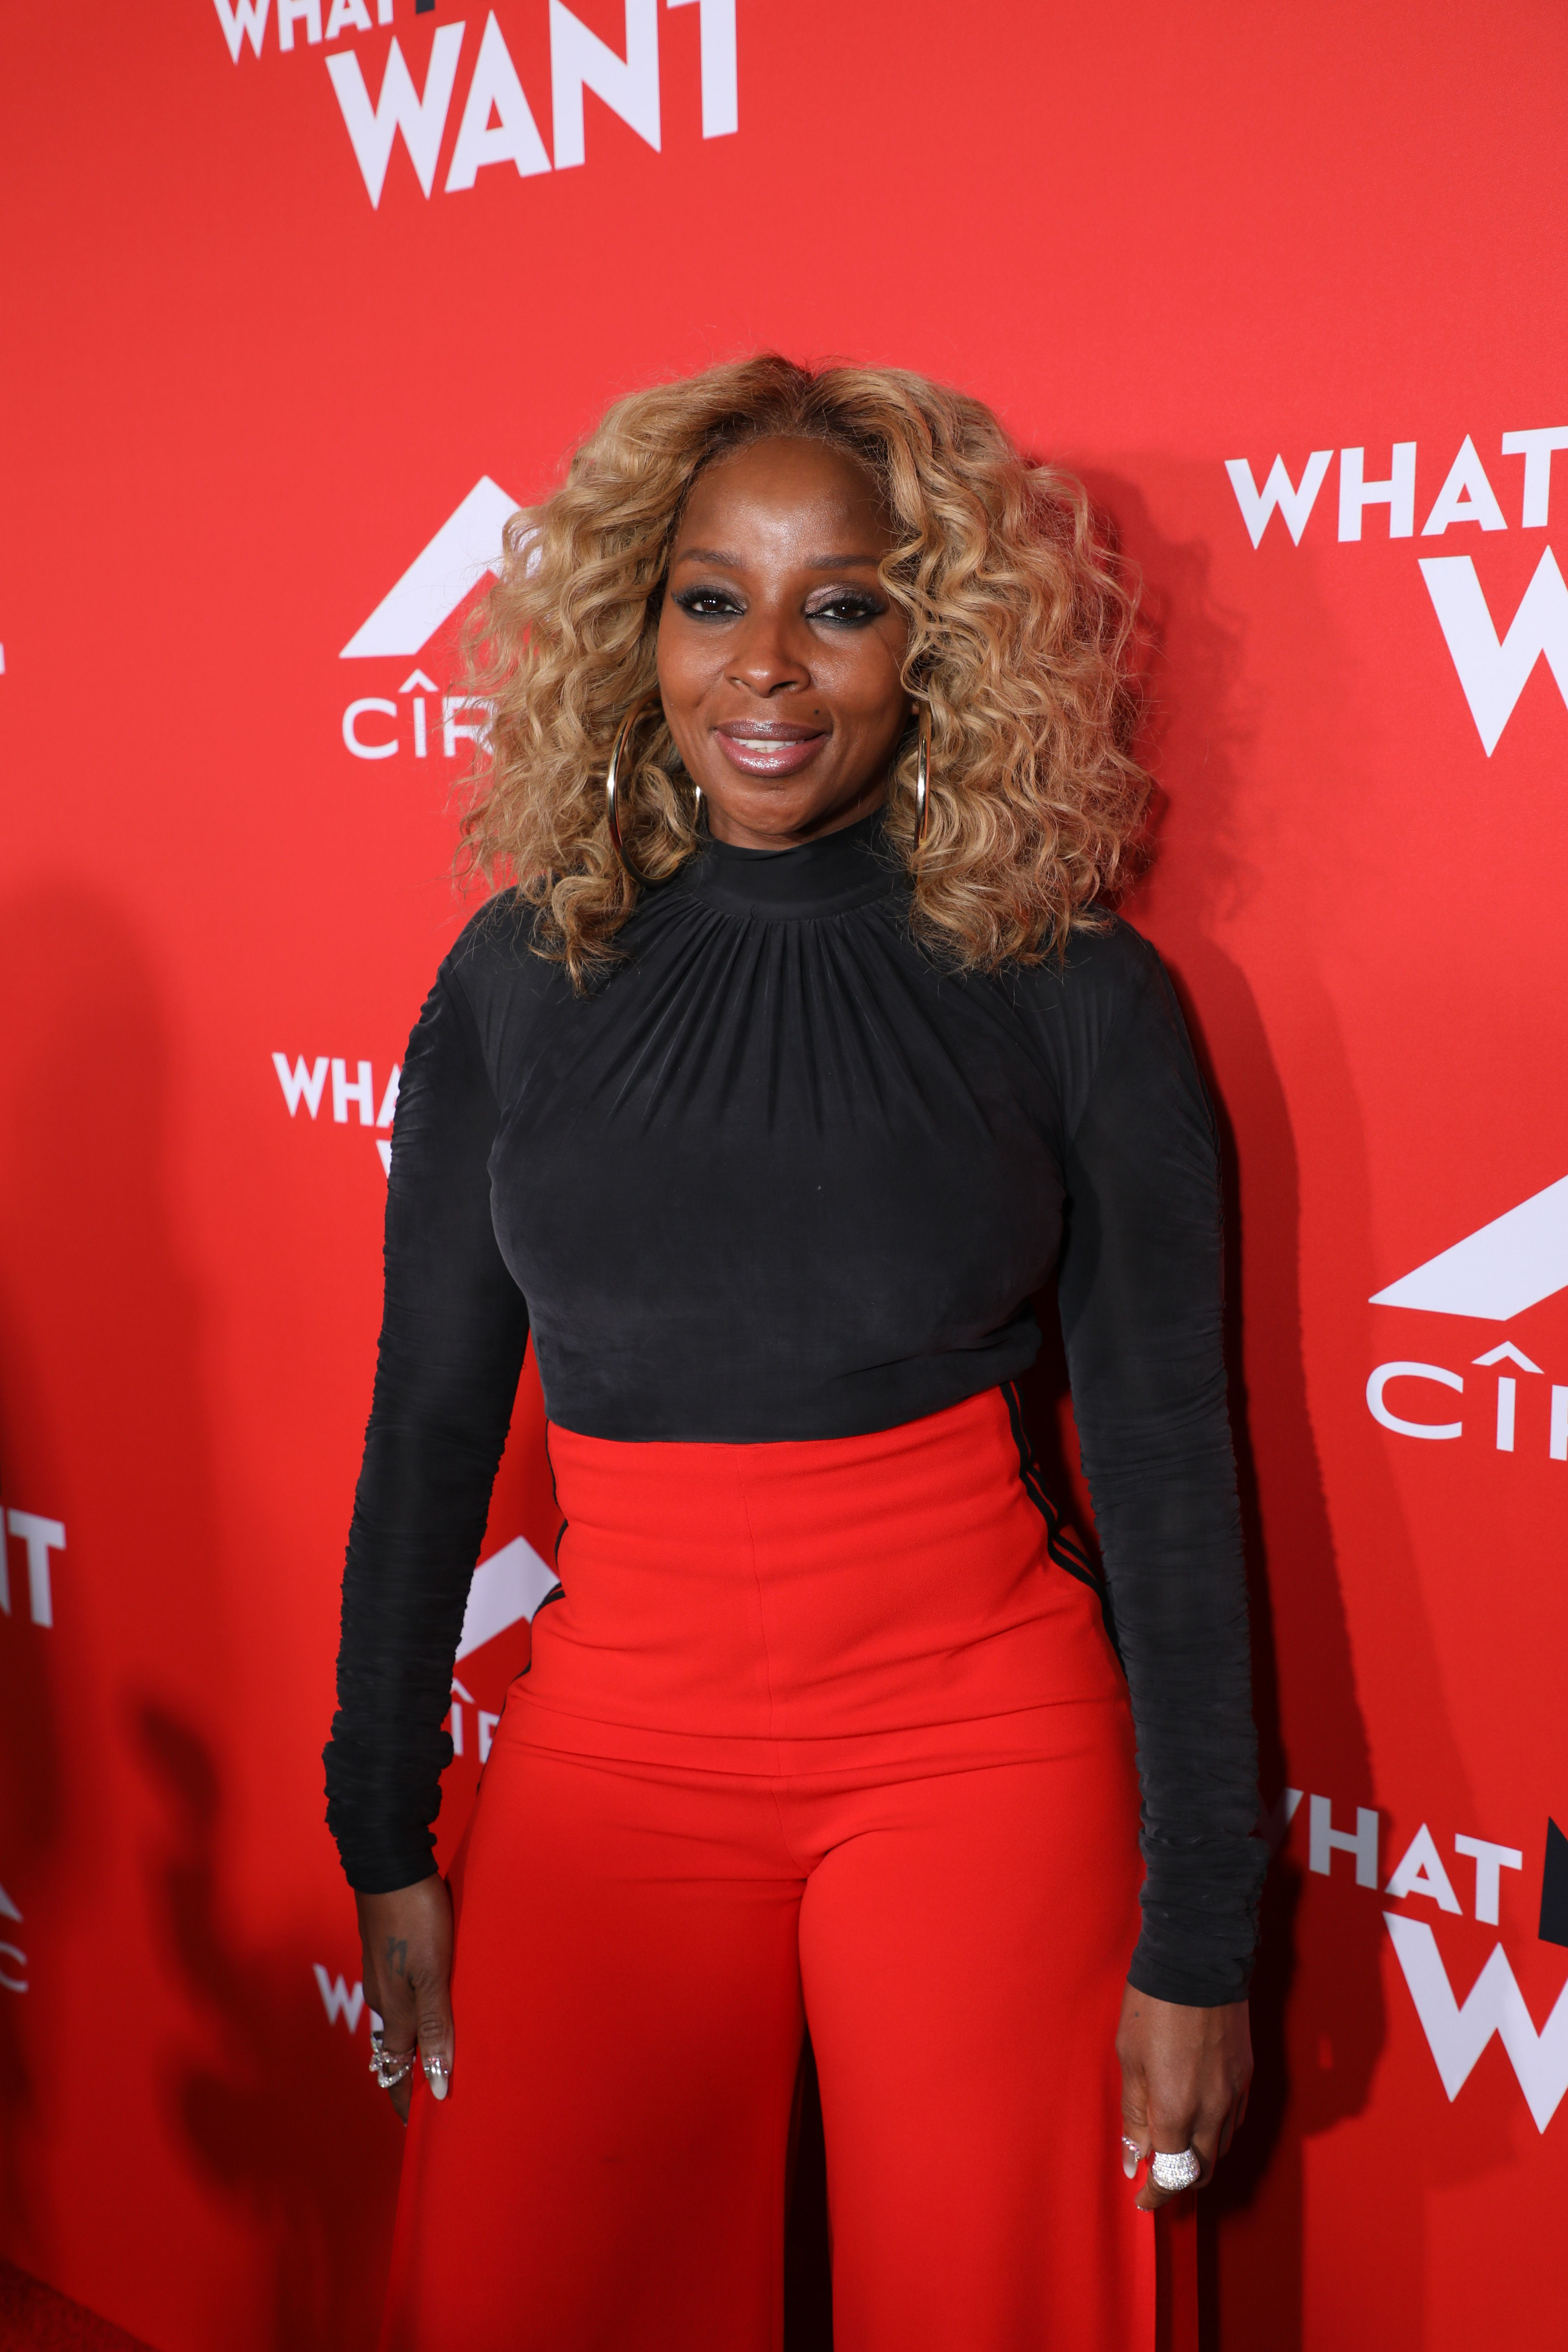 Mary J Blige Supported Her Friend Taraji P Henson At The Red